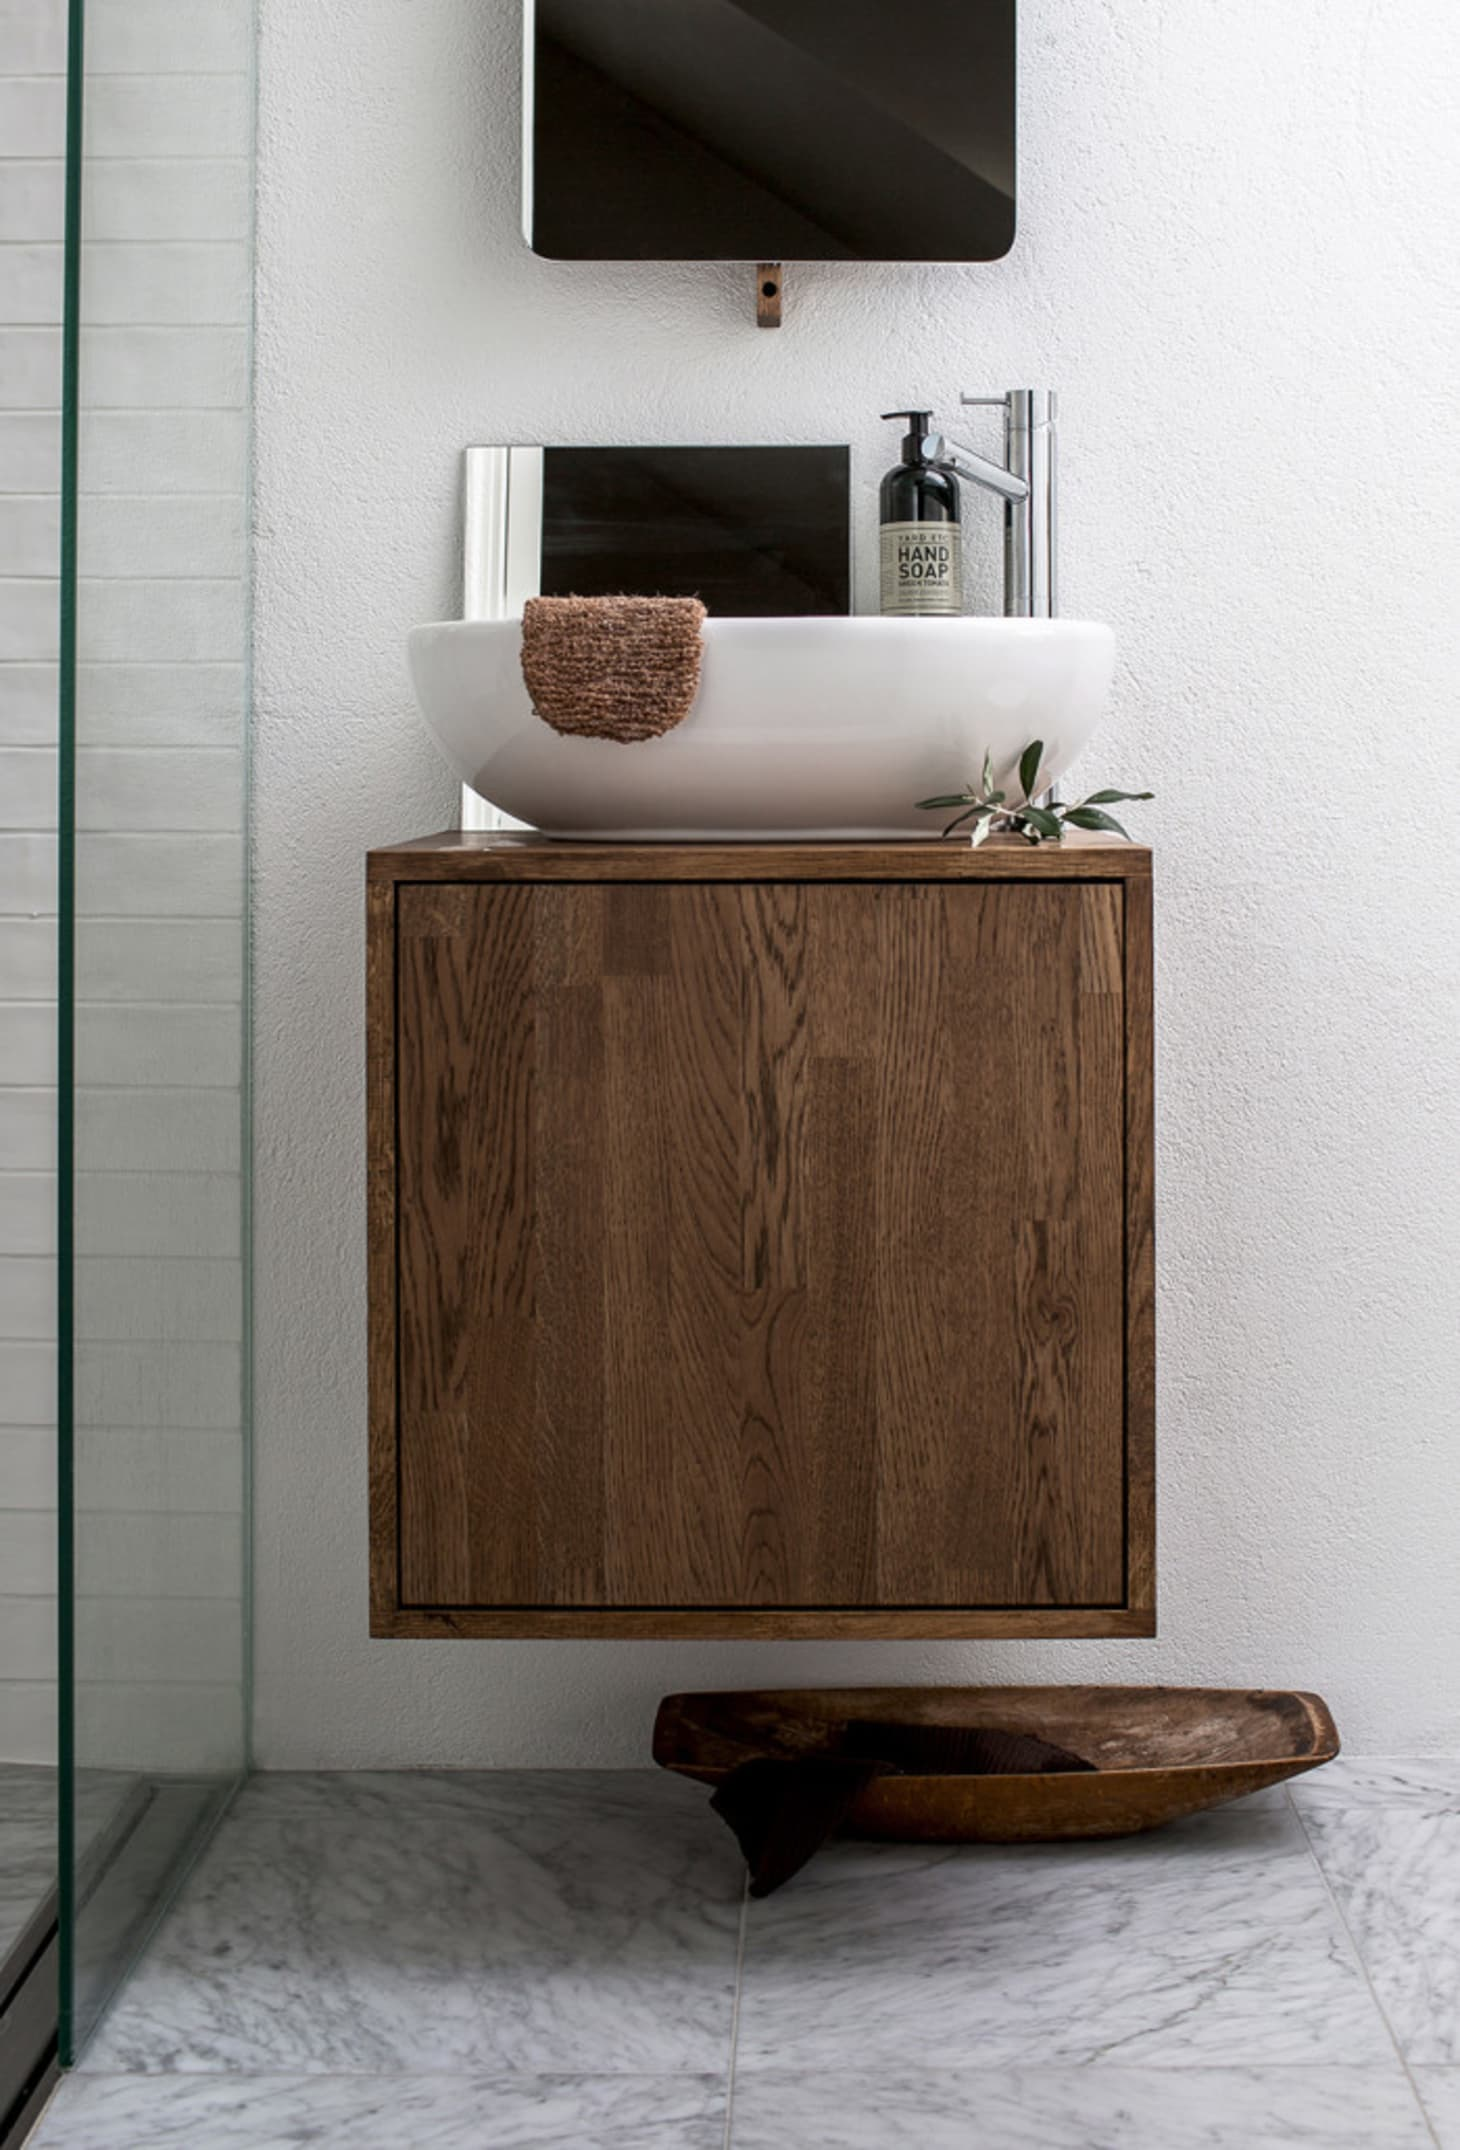 Stylish Remodeling Ideas for Small Bathrooms | Apartment ... on Small Apartment Bathroom  id=88287